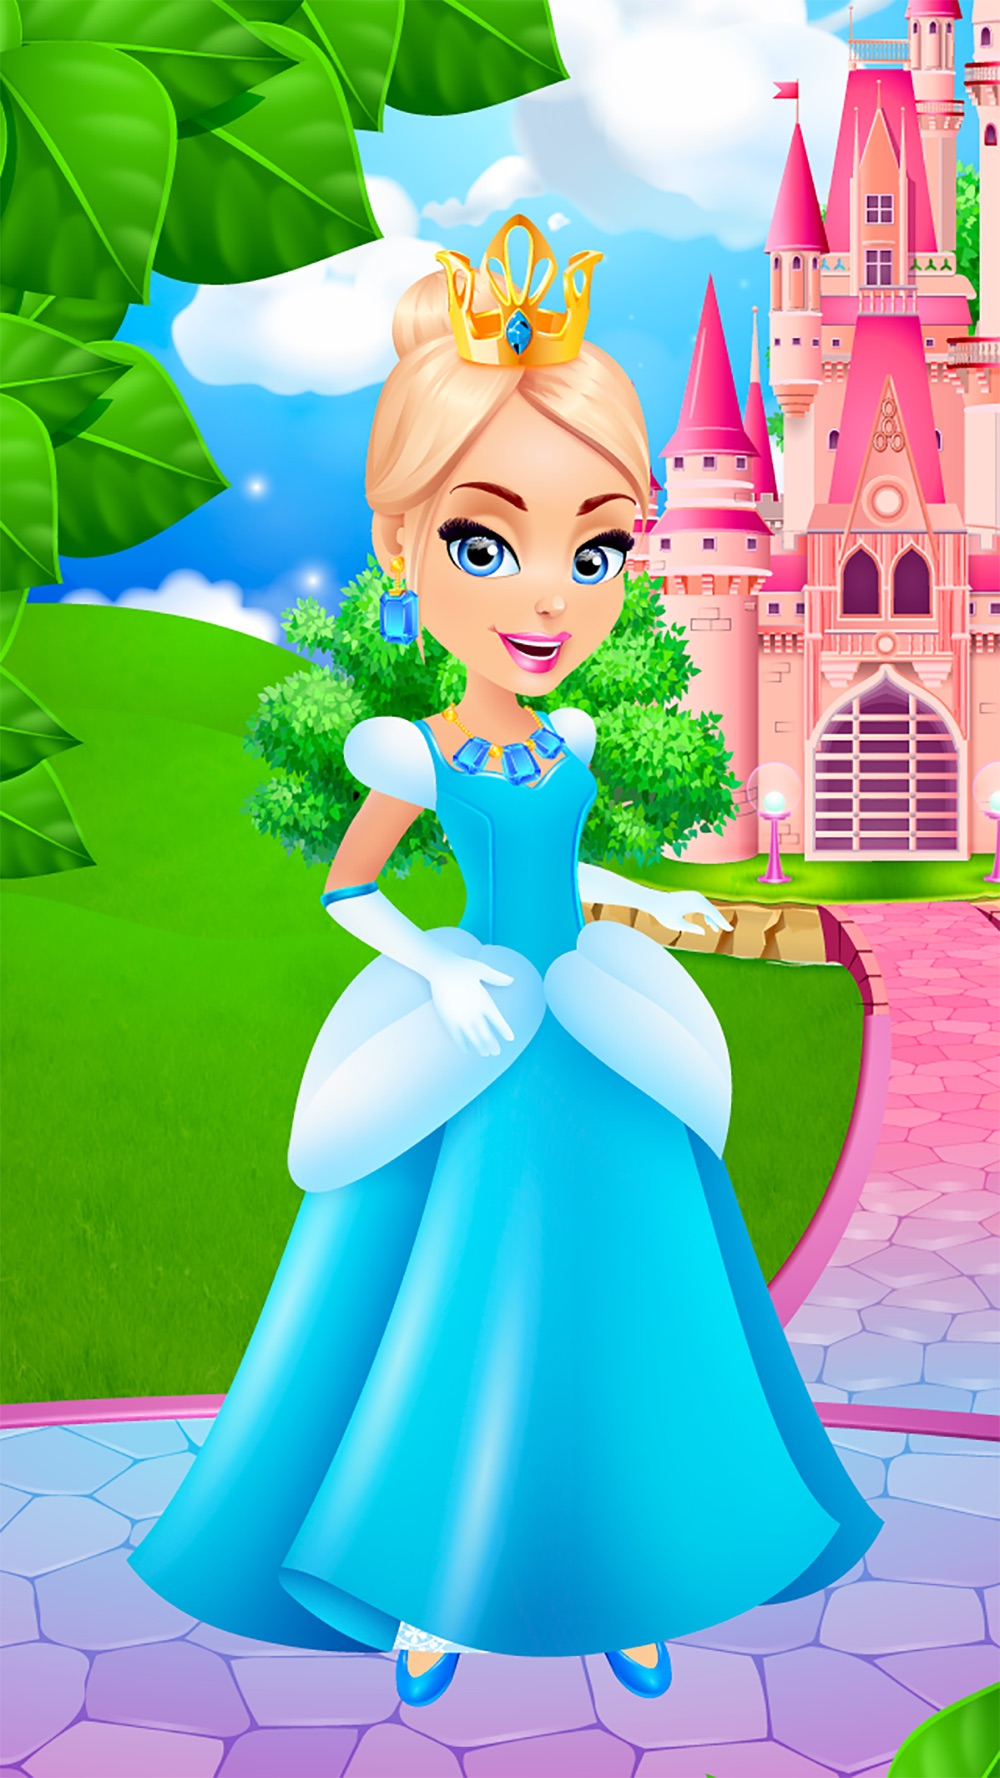 Cinderella's Life Story - Fairy Tale & Girls Games hack tool